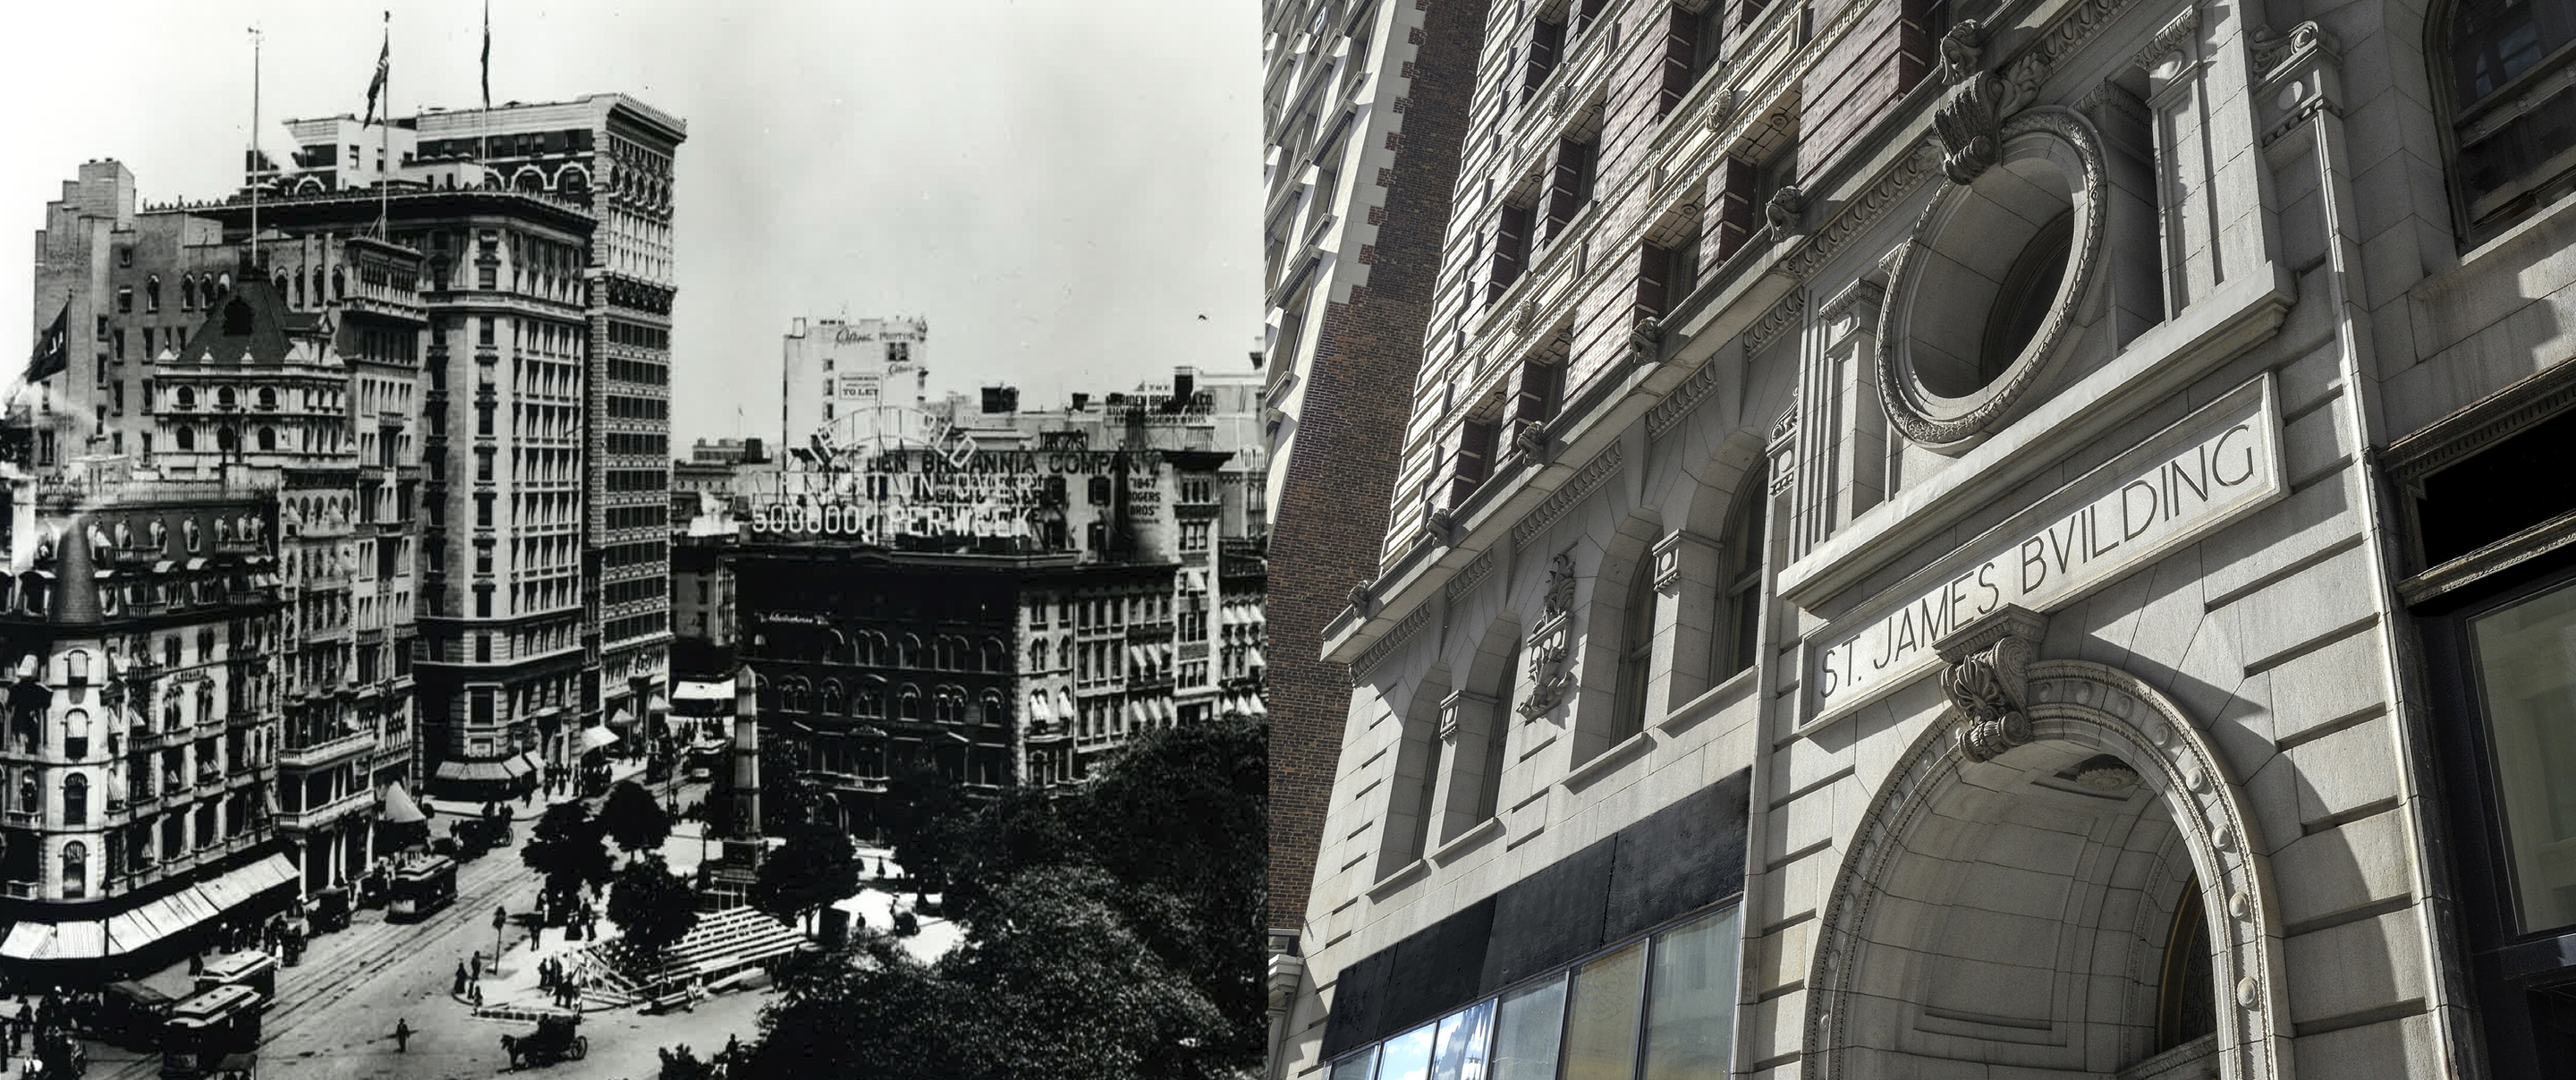 Read about the St James building history in New York City.